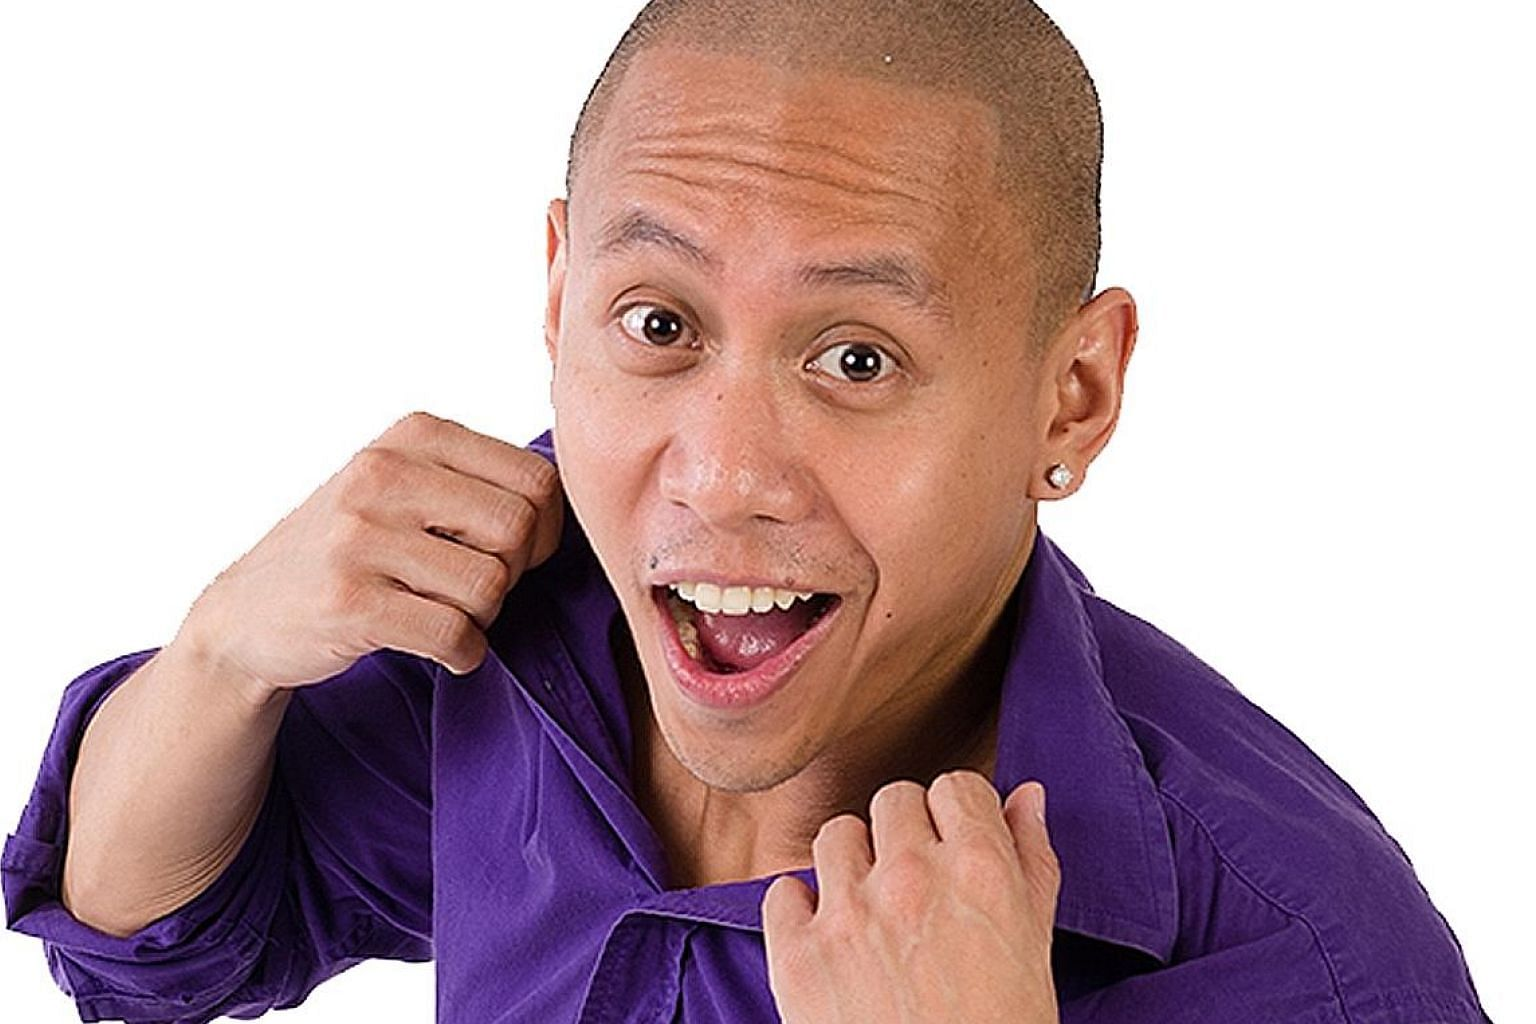 Many of comedian Mikey Bustos' YouTube appearances feature his take on Filipino culture, issues and politics.